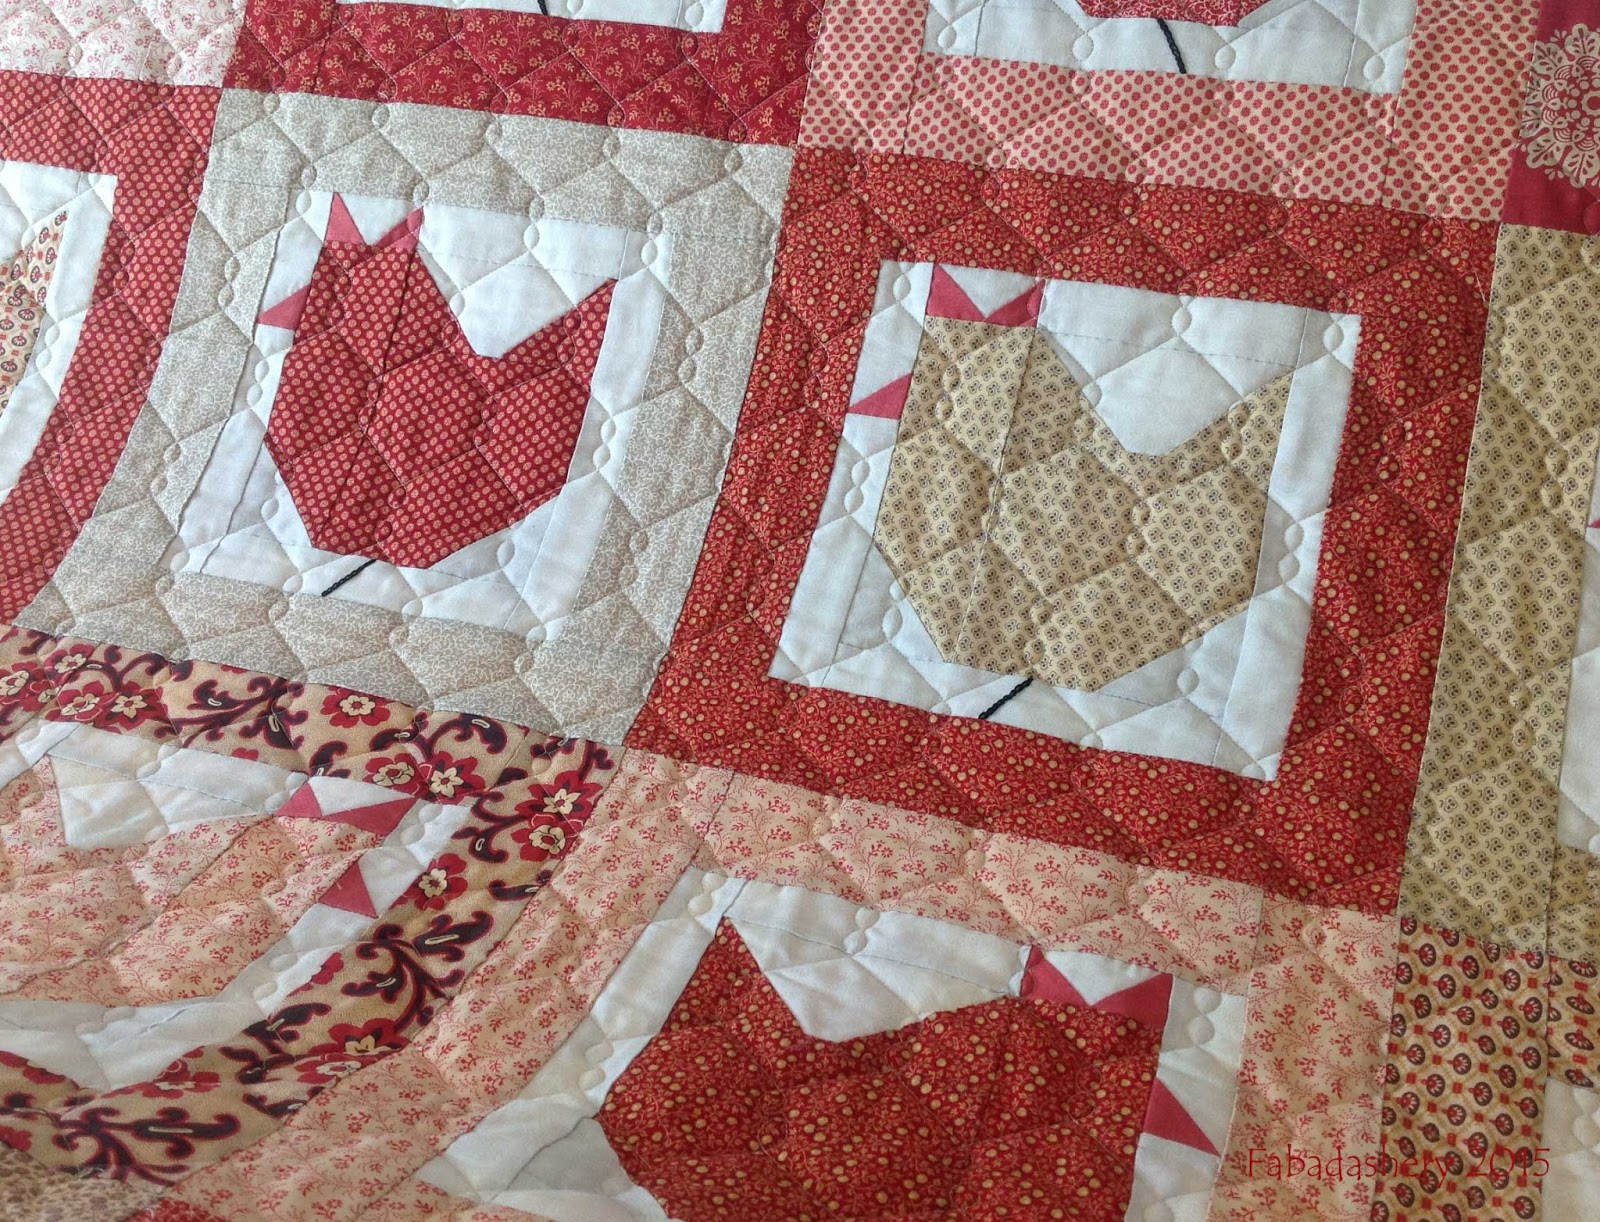 Fabadashery Longarm Quilting Hen Party Quilt